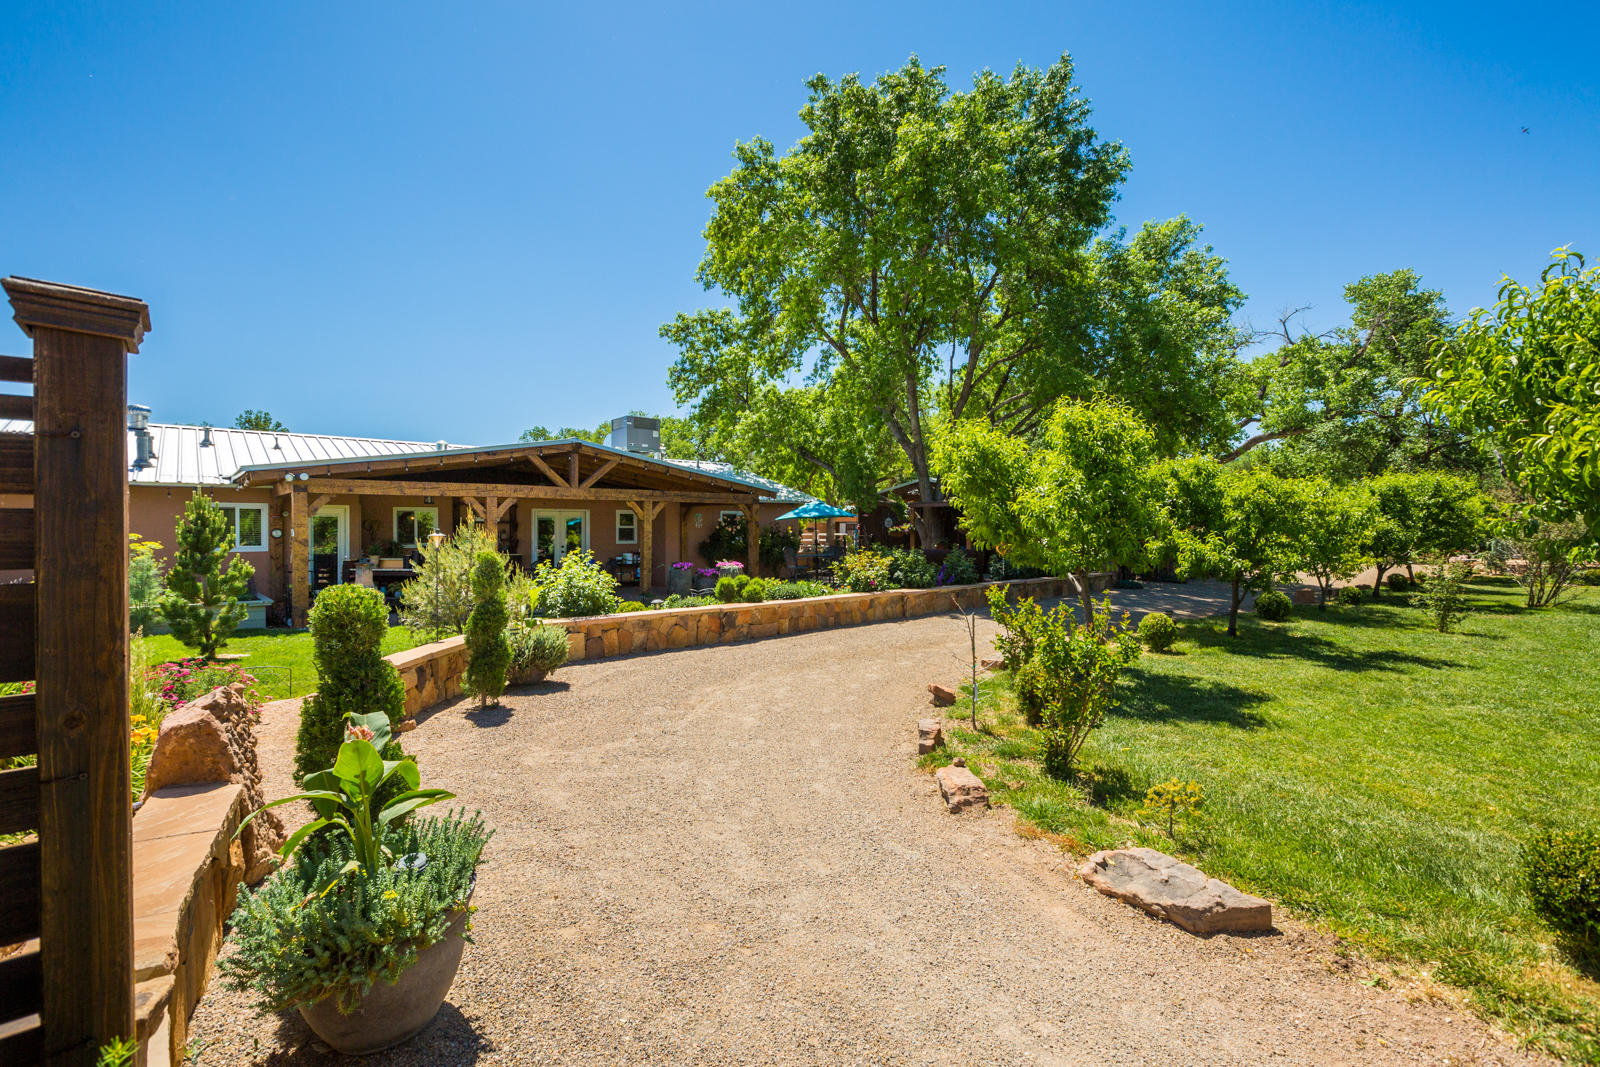 This stunning property is a dream come true for either equestrians, organic farmers or someone who wants to live on gorgeous  grounds that feel like a private botanical garden. Home sits on front 1.08 acre lot and has been beautifully remodeled. Since 2018, the owners have spent more that $220,000 in improvements. The back lot is 2.55 acres and a large home could be built on it, as it is separately platted. The horse facilities are top-notch and include 11 stalls, a wash rack and beautiful arena and pasture. The grounds feature an abundance of fruit trees, flowerbeds and vegetable gardens (all organic). Perfect for outdoor entertaining, there is a huge covered portal with beams and ceiling fan, a rock waterfall and bar. The beauty of these grounds will take your breath away.